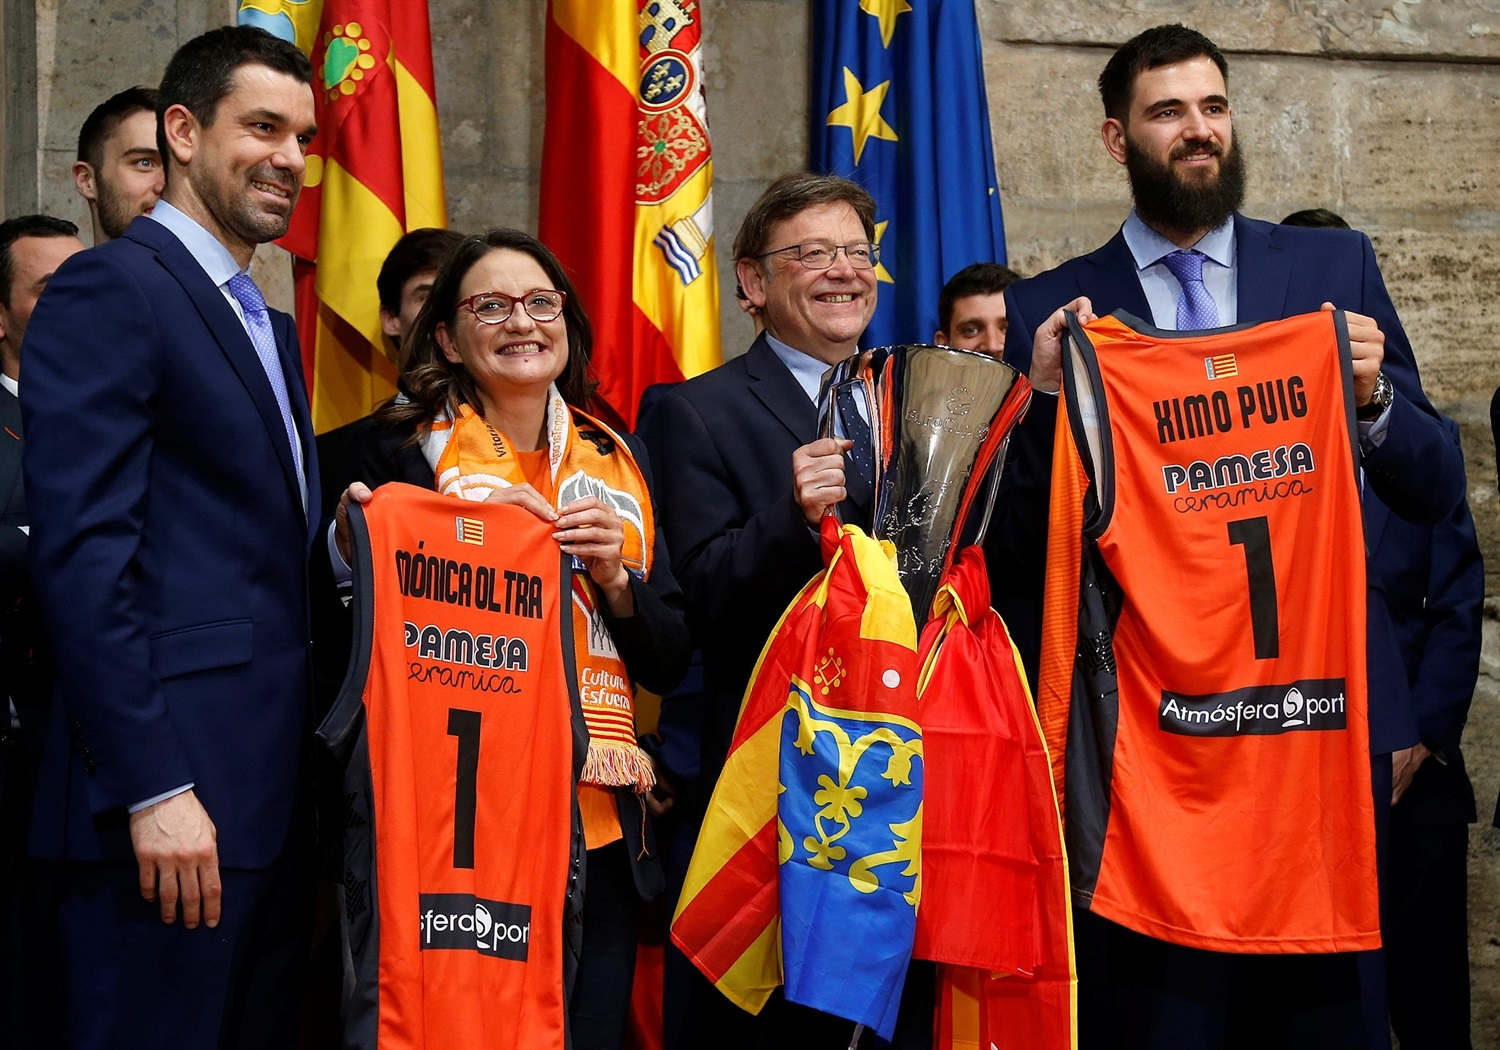 Team visit Generalitat Valenciana - Valencia Basket celebrates EuroCup champ in Valencia - EuroCup Finals 2018-19 (photo Valencia Basket) - EC18